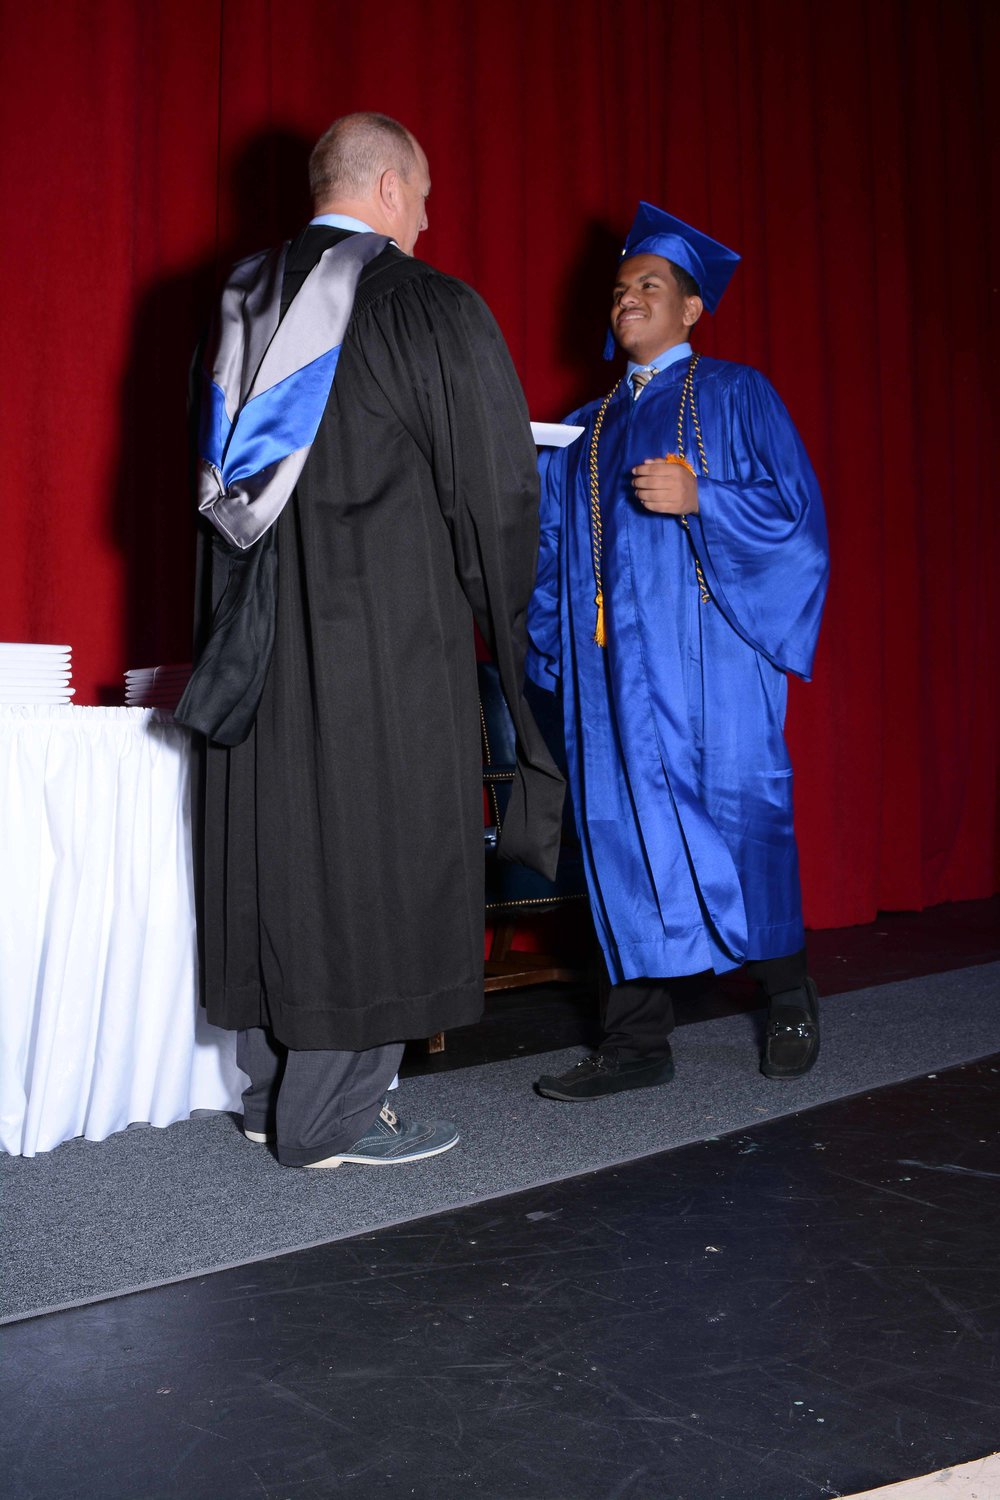 May14 Commencement150.jpg